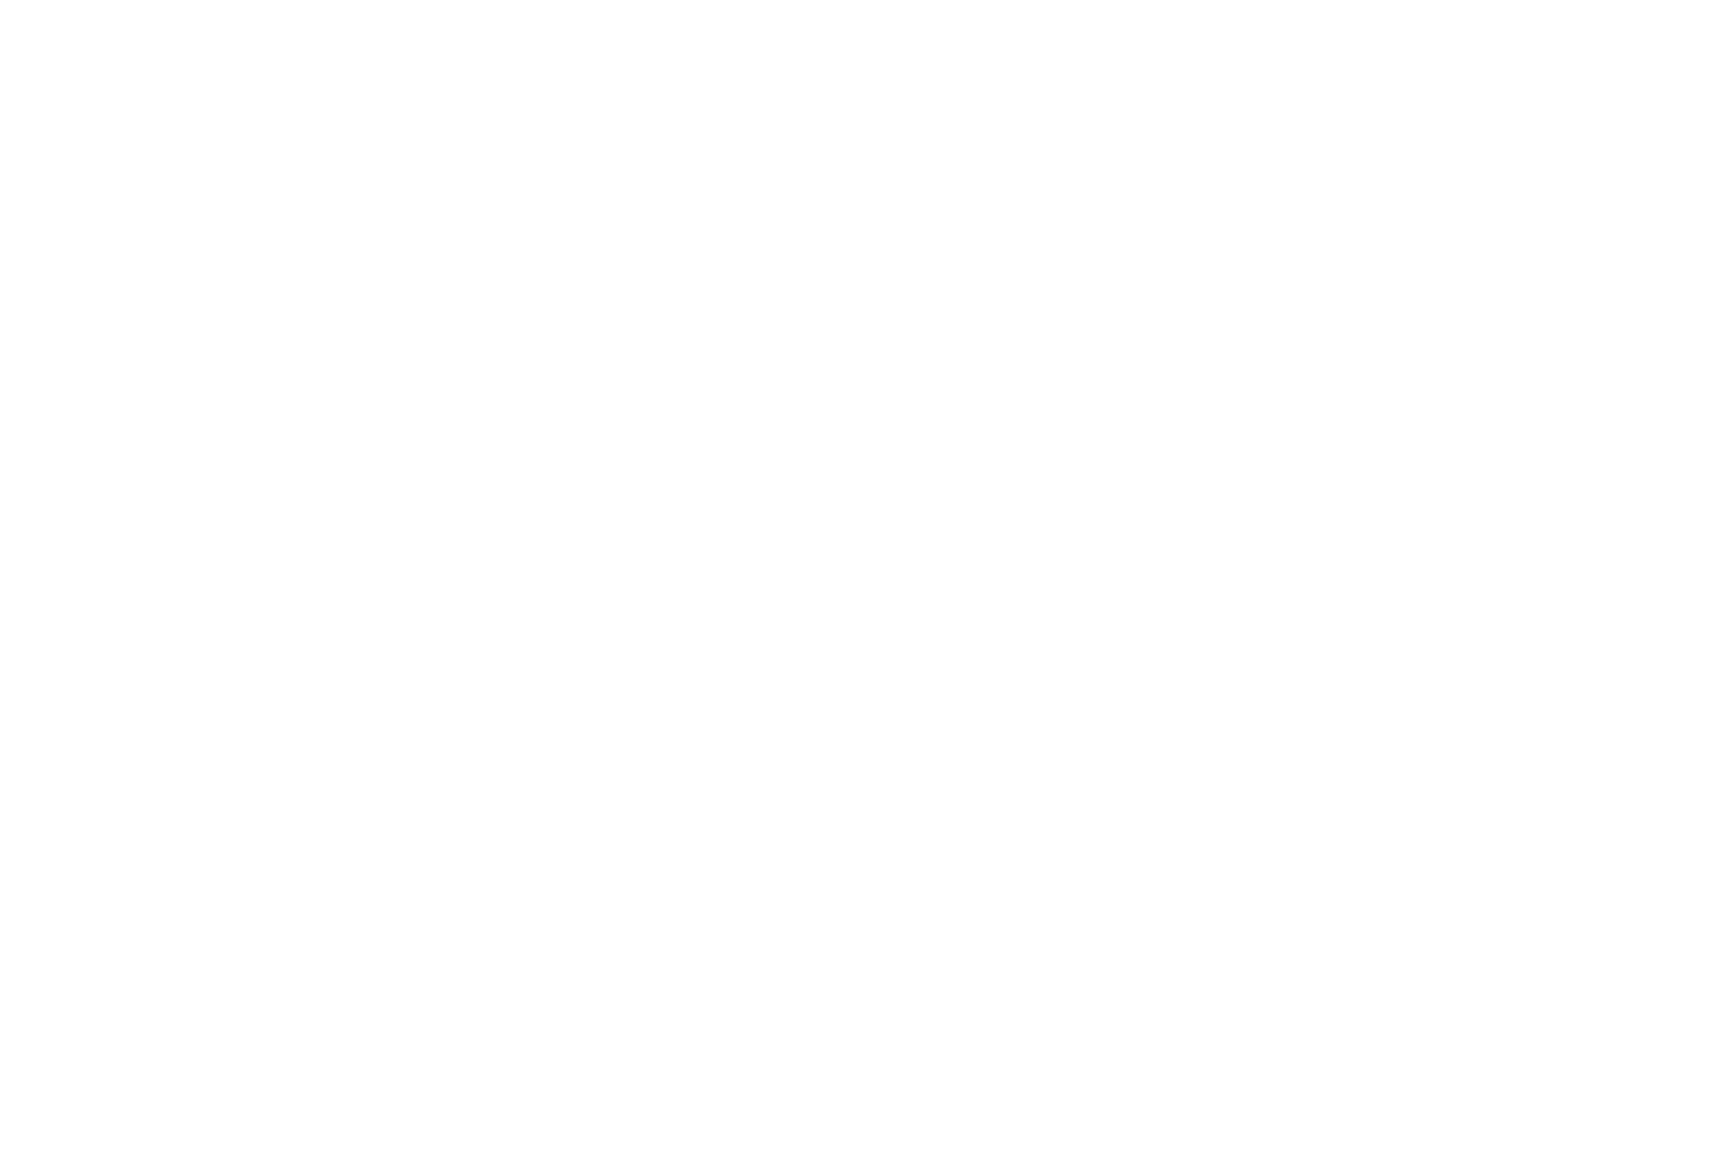 NOMINATED - BEST DIRECTOR SHORT FILM USA - NYCIFF 2016 (1).png